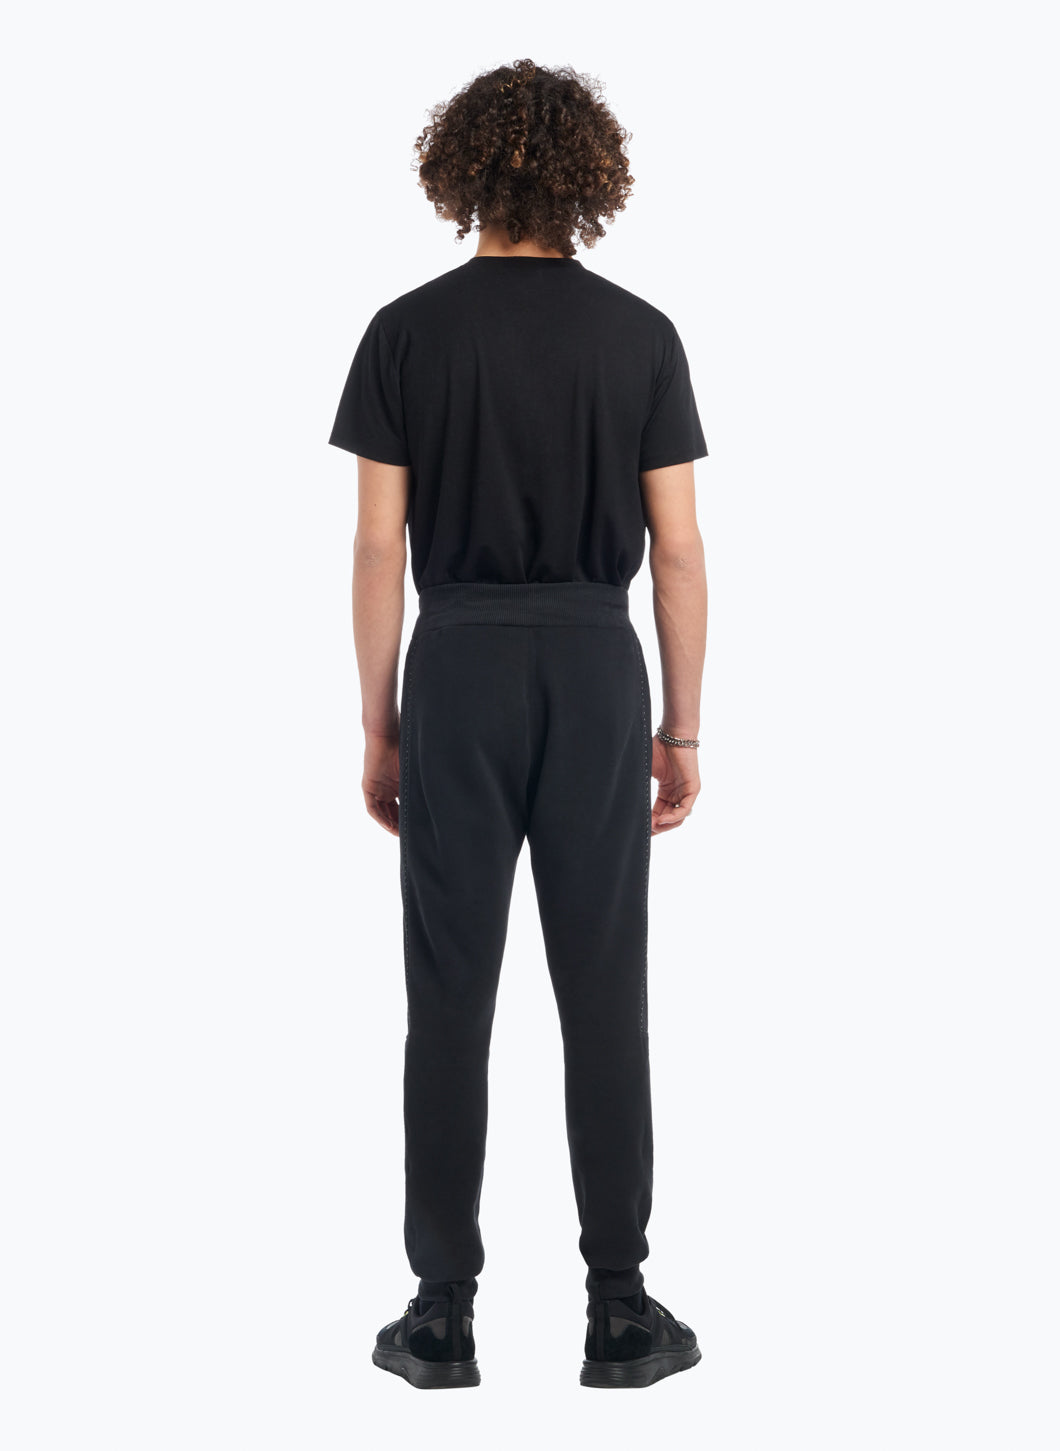 Jogging Pants with Side Cutouts in Black Fleece with Black Trim